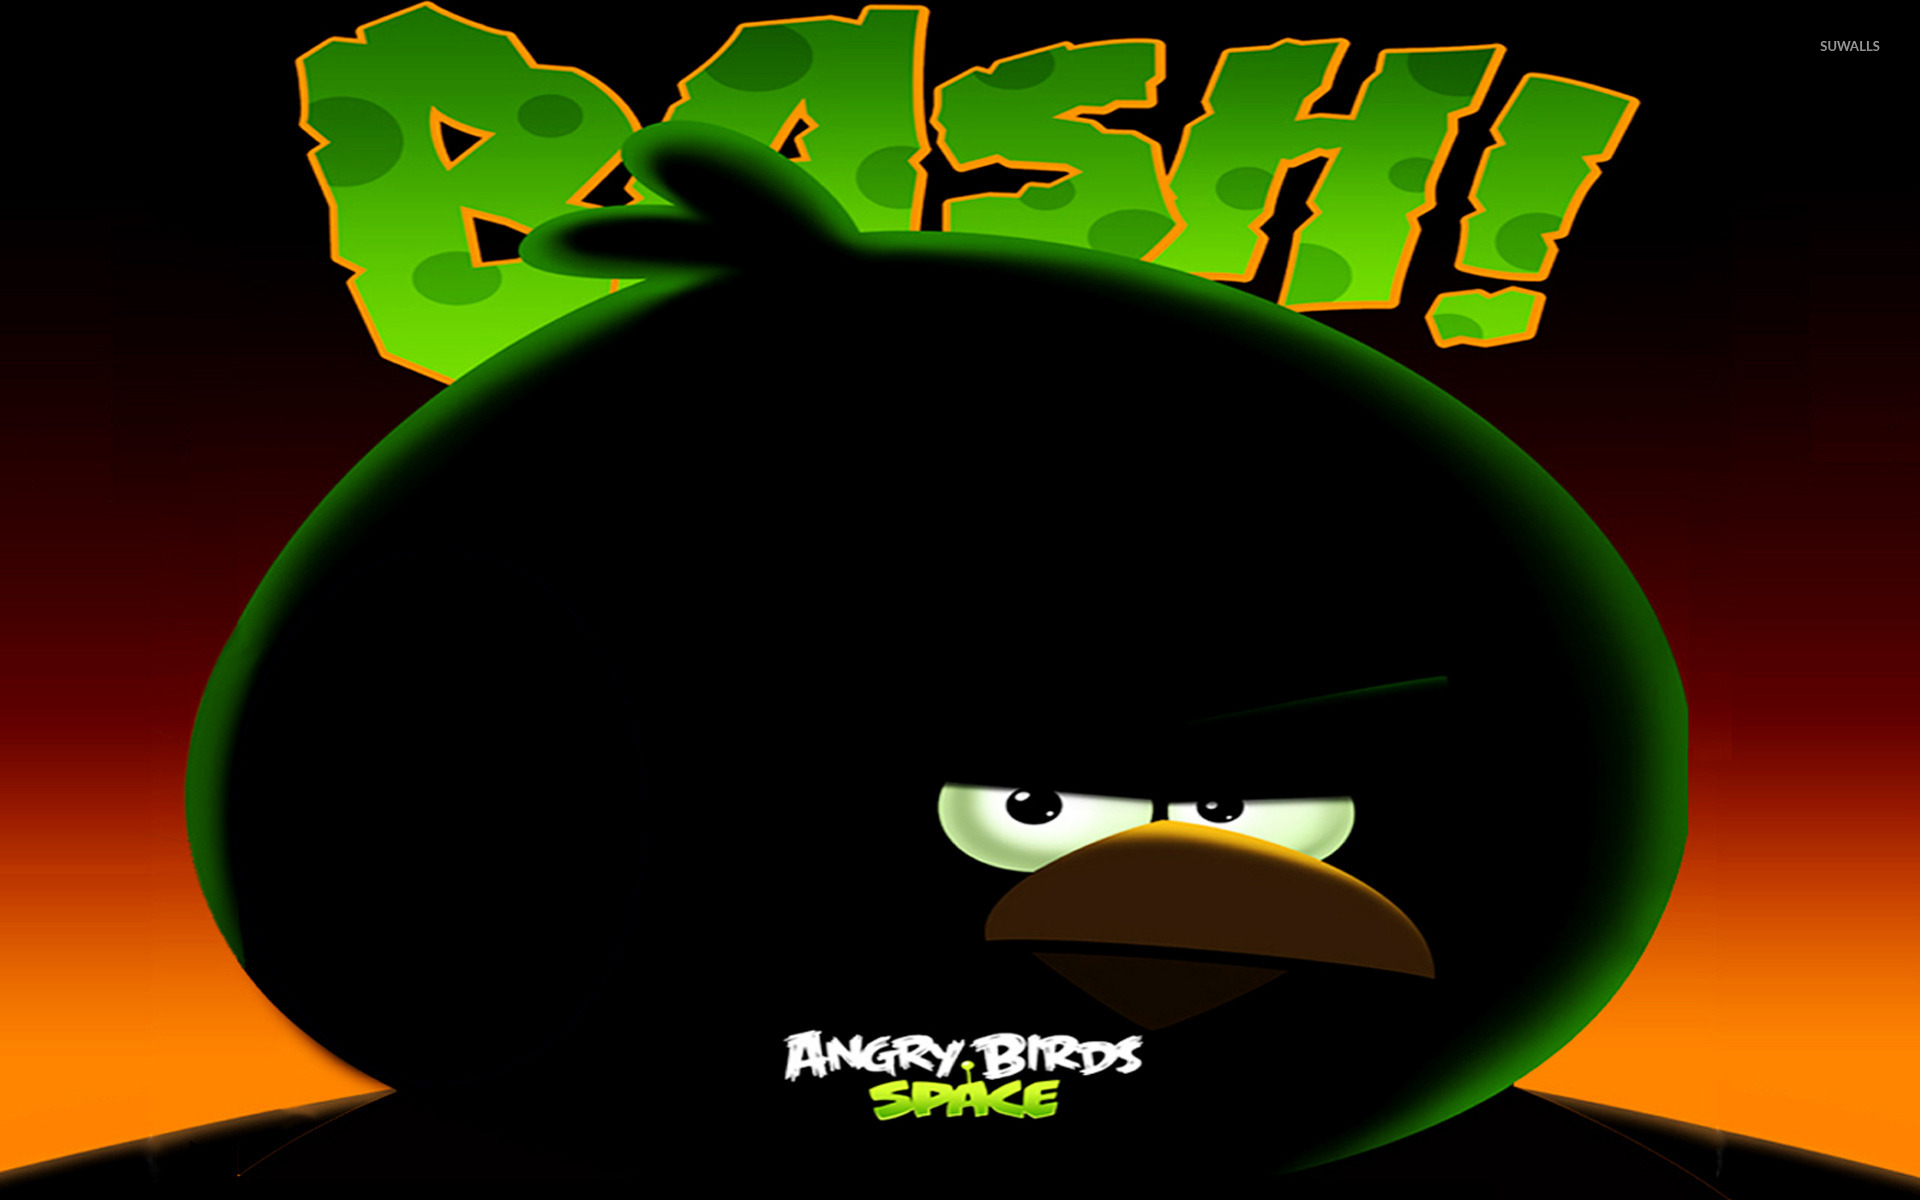 Angry Birds Space 5 Wallpaper 1920x1200 Jpg